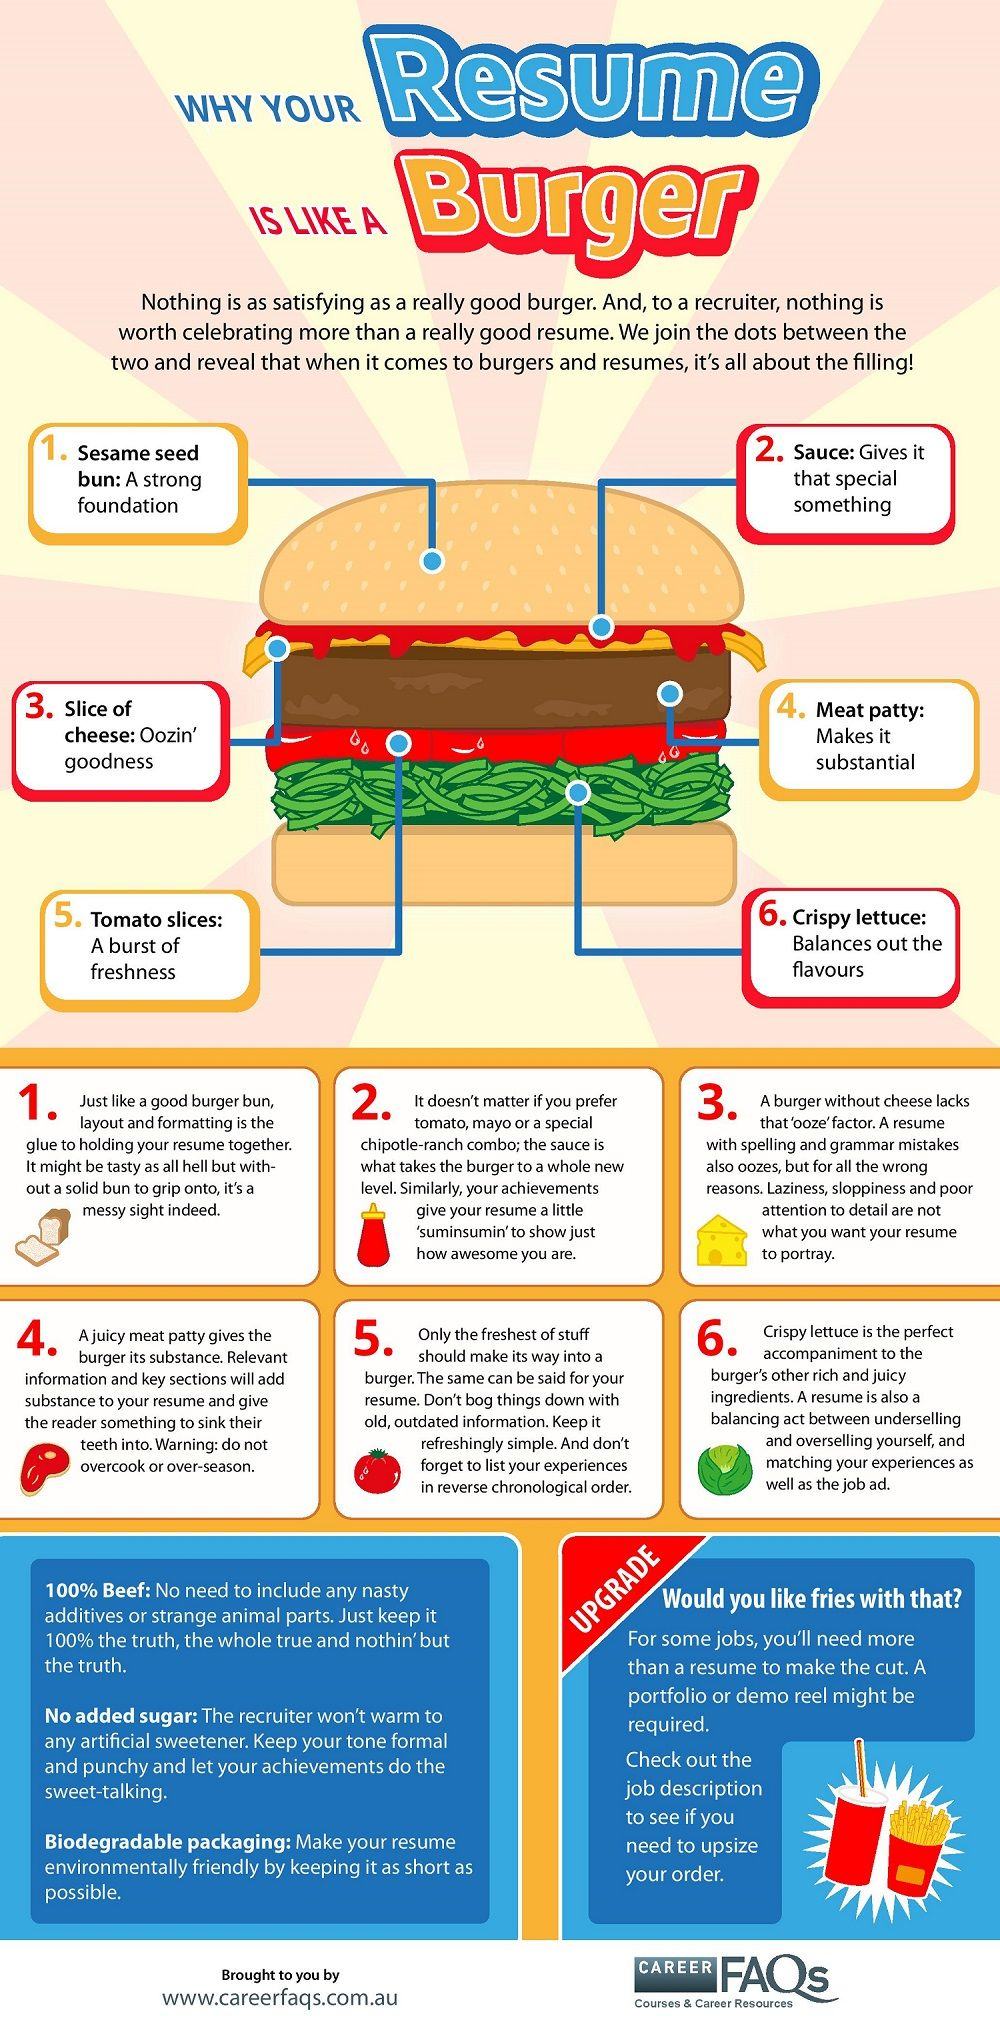 Why Your Resume Is Like A Burger  Career Faqs  Career Tips